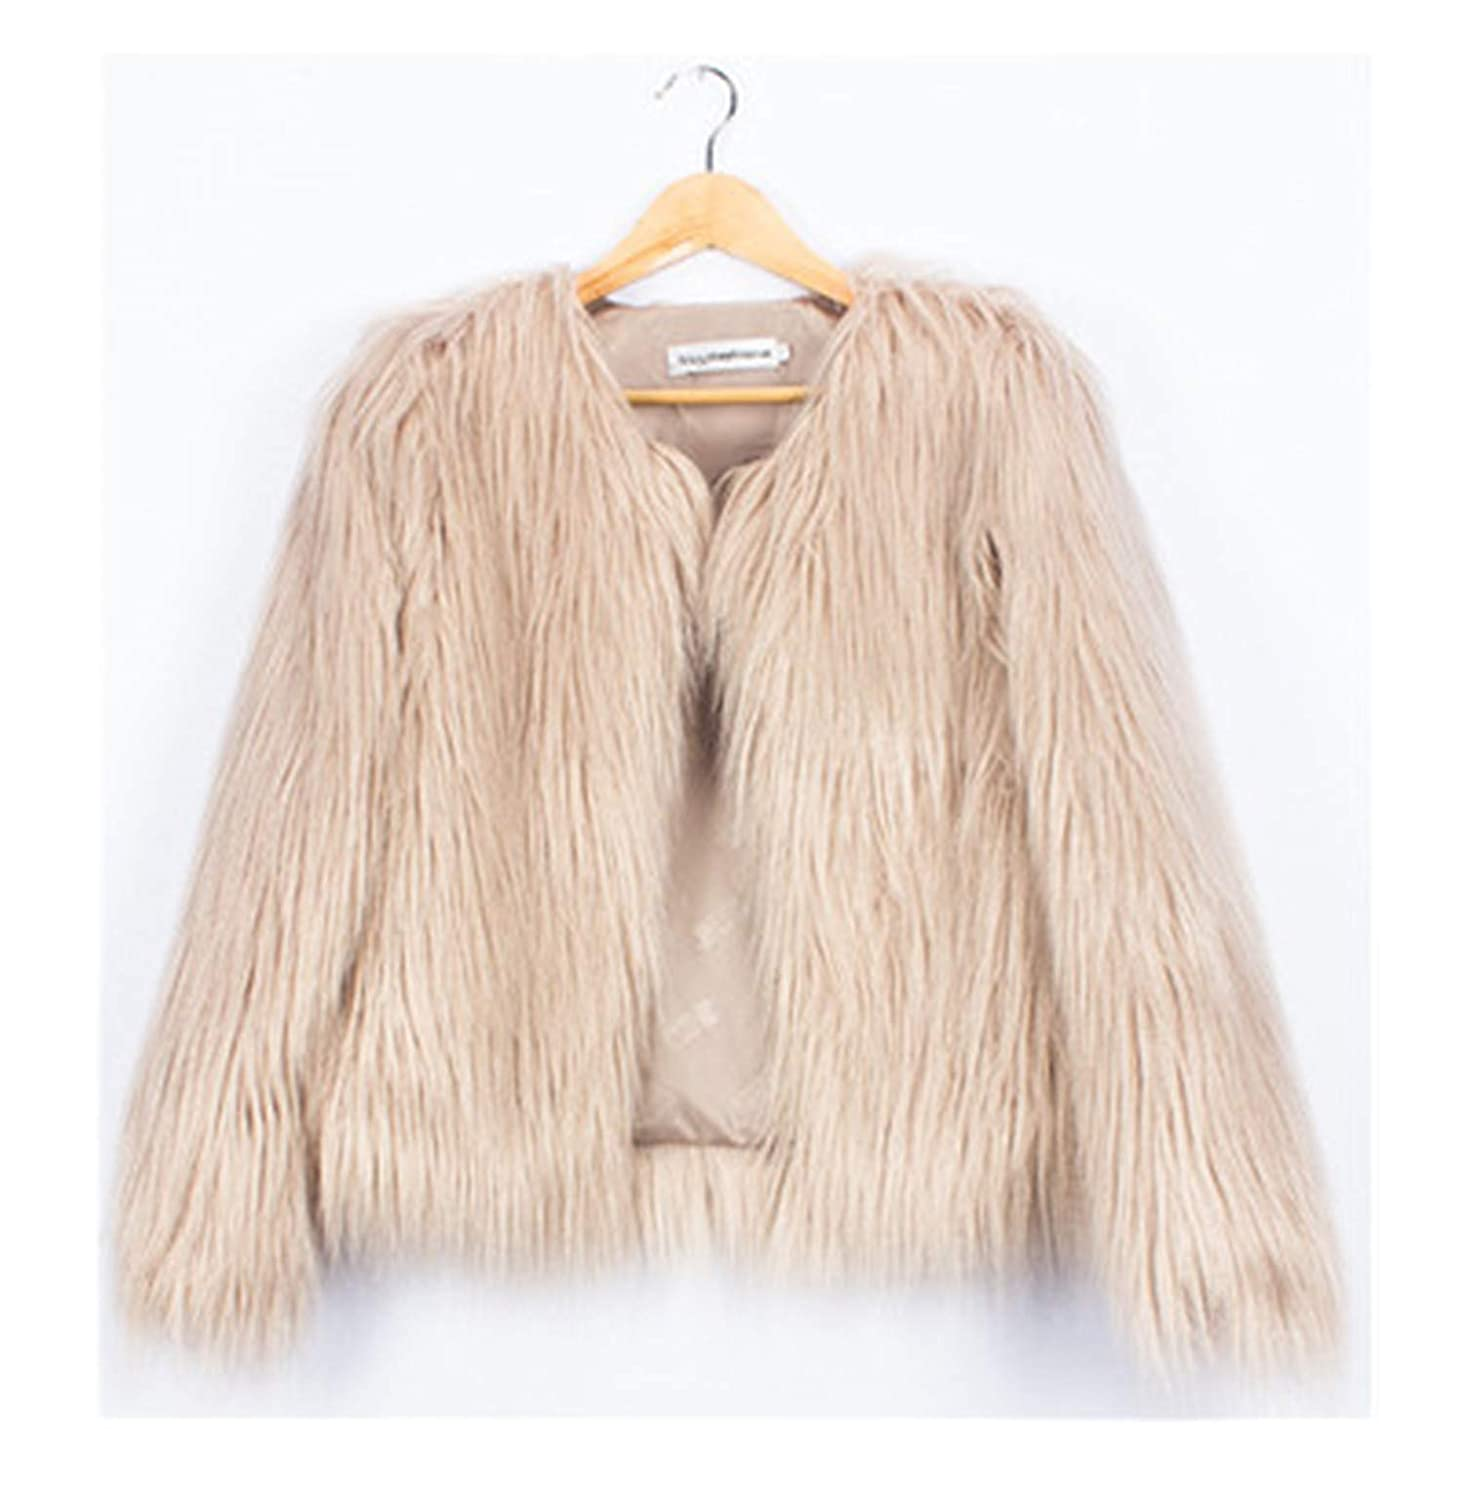 Stylish Jackets for Girls Autumn Kids Coats Baby Girl Faux Fur Outerwear 2-10Y